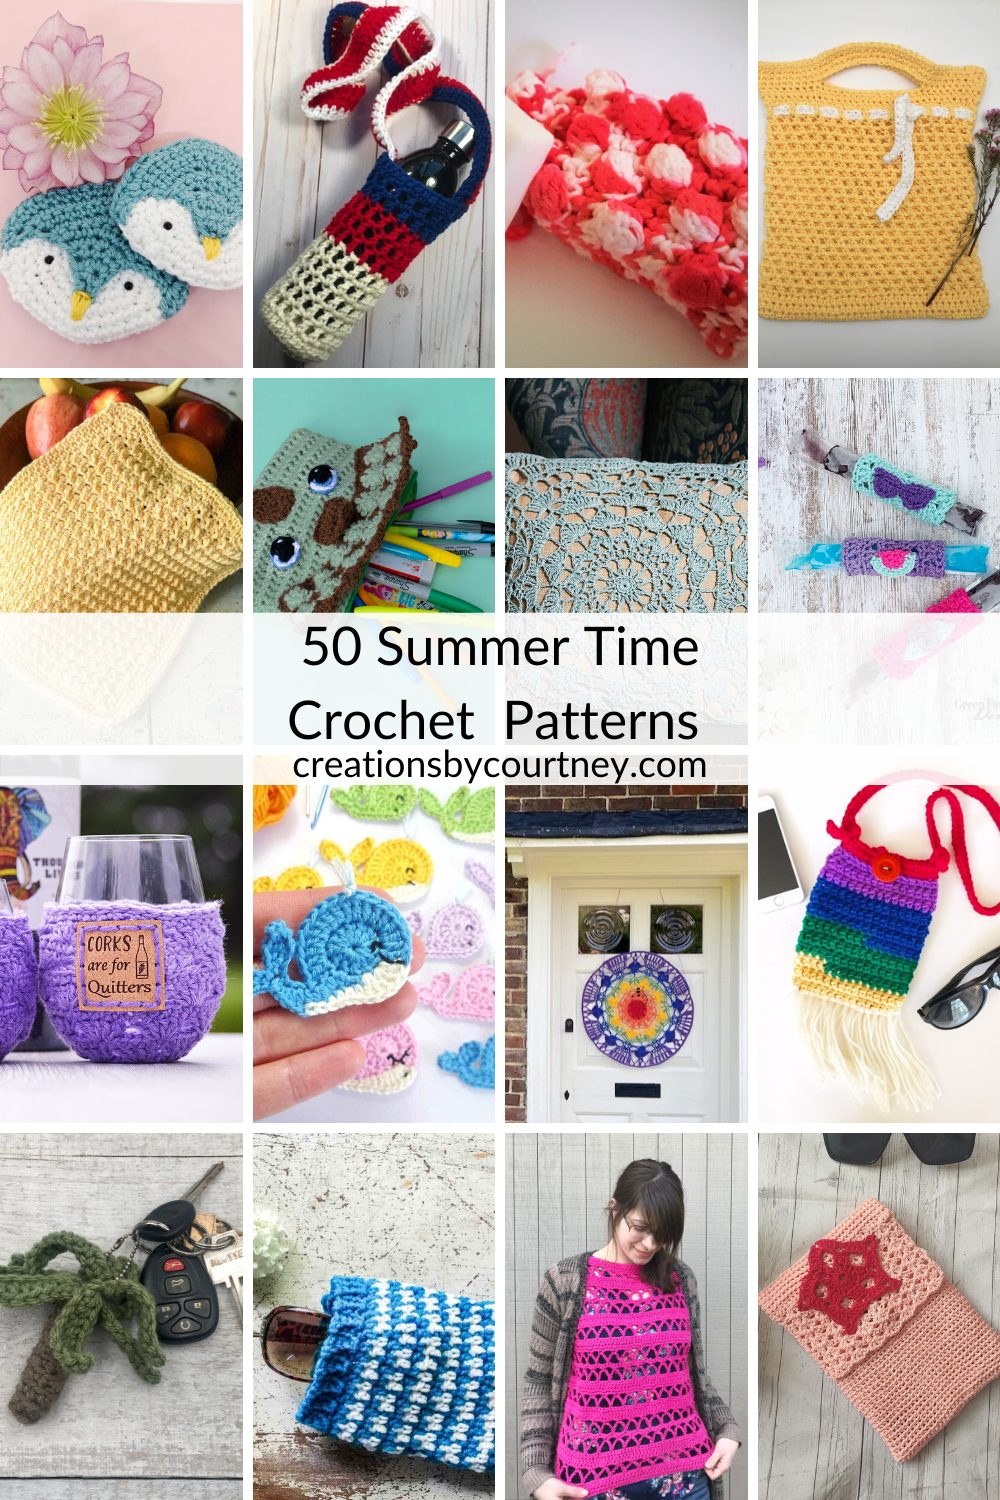 Summer Stitch Along offers 50 crochet patterns perfect for making during long summer days. You'll find appliqués, tote bags, shawls, a poncho and more. #crochetpatterns #freecrochetpatterns #crochettop #crochetaccessory